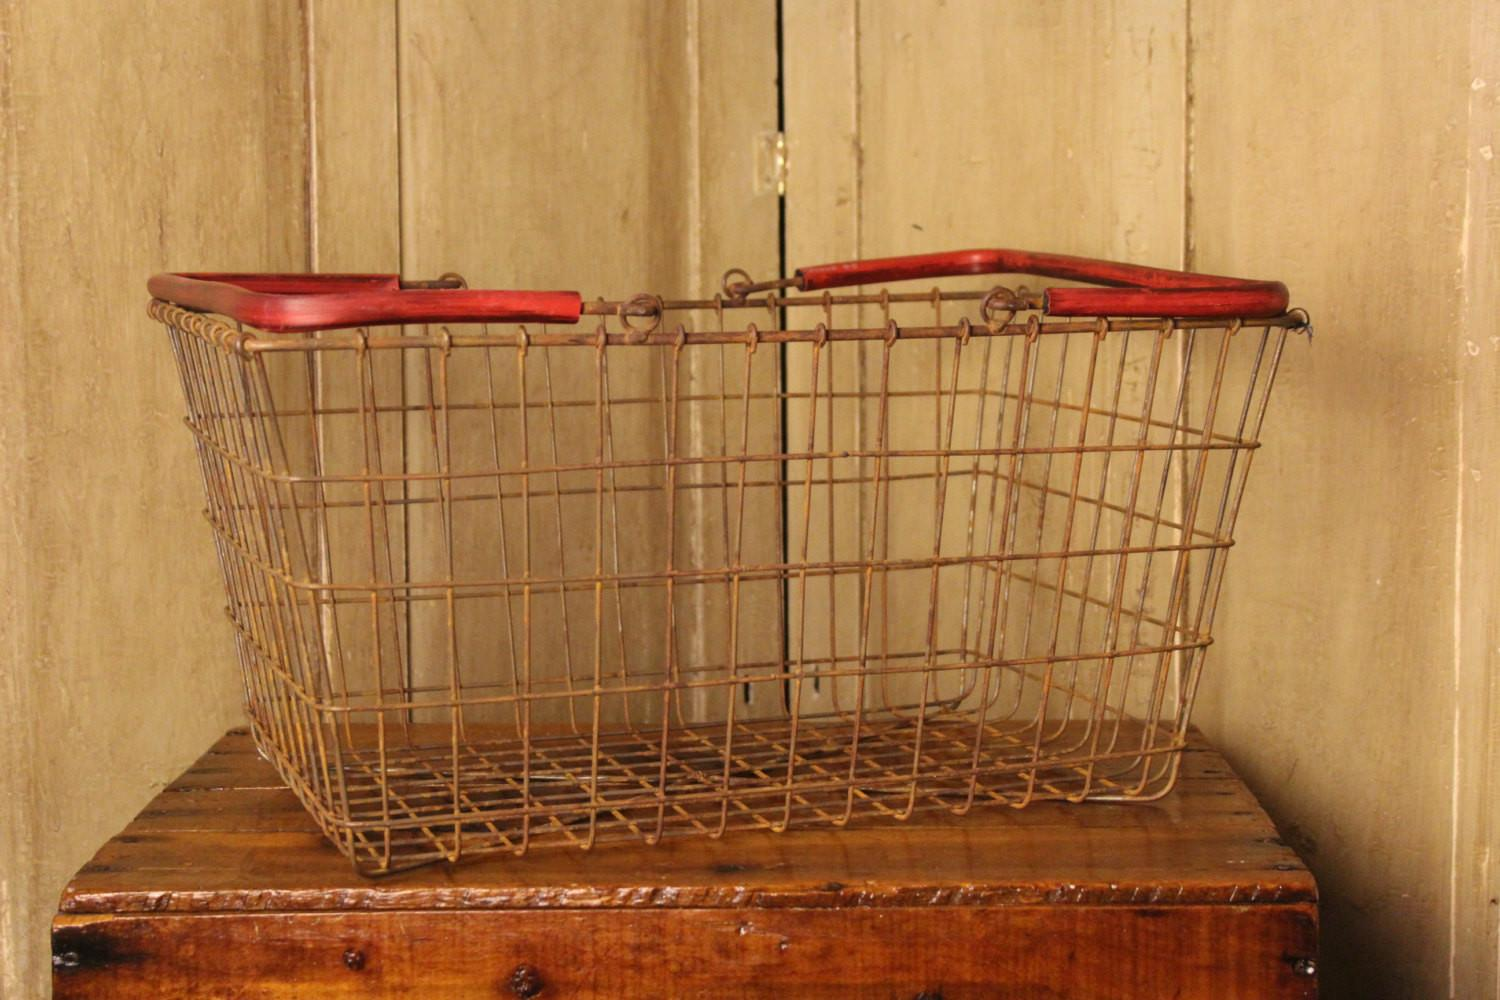 Metal Market Basket Home Living Decor Vintage